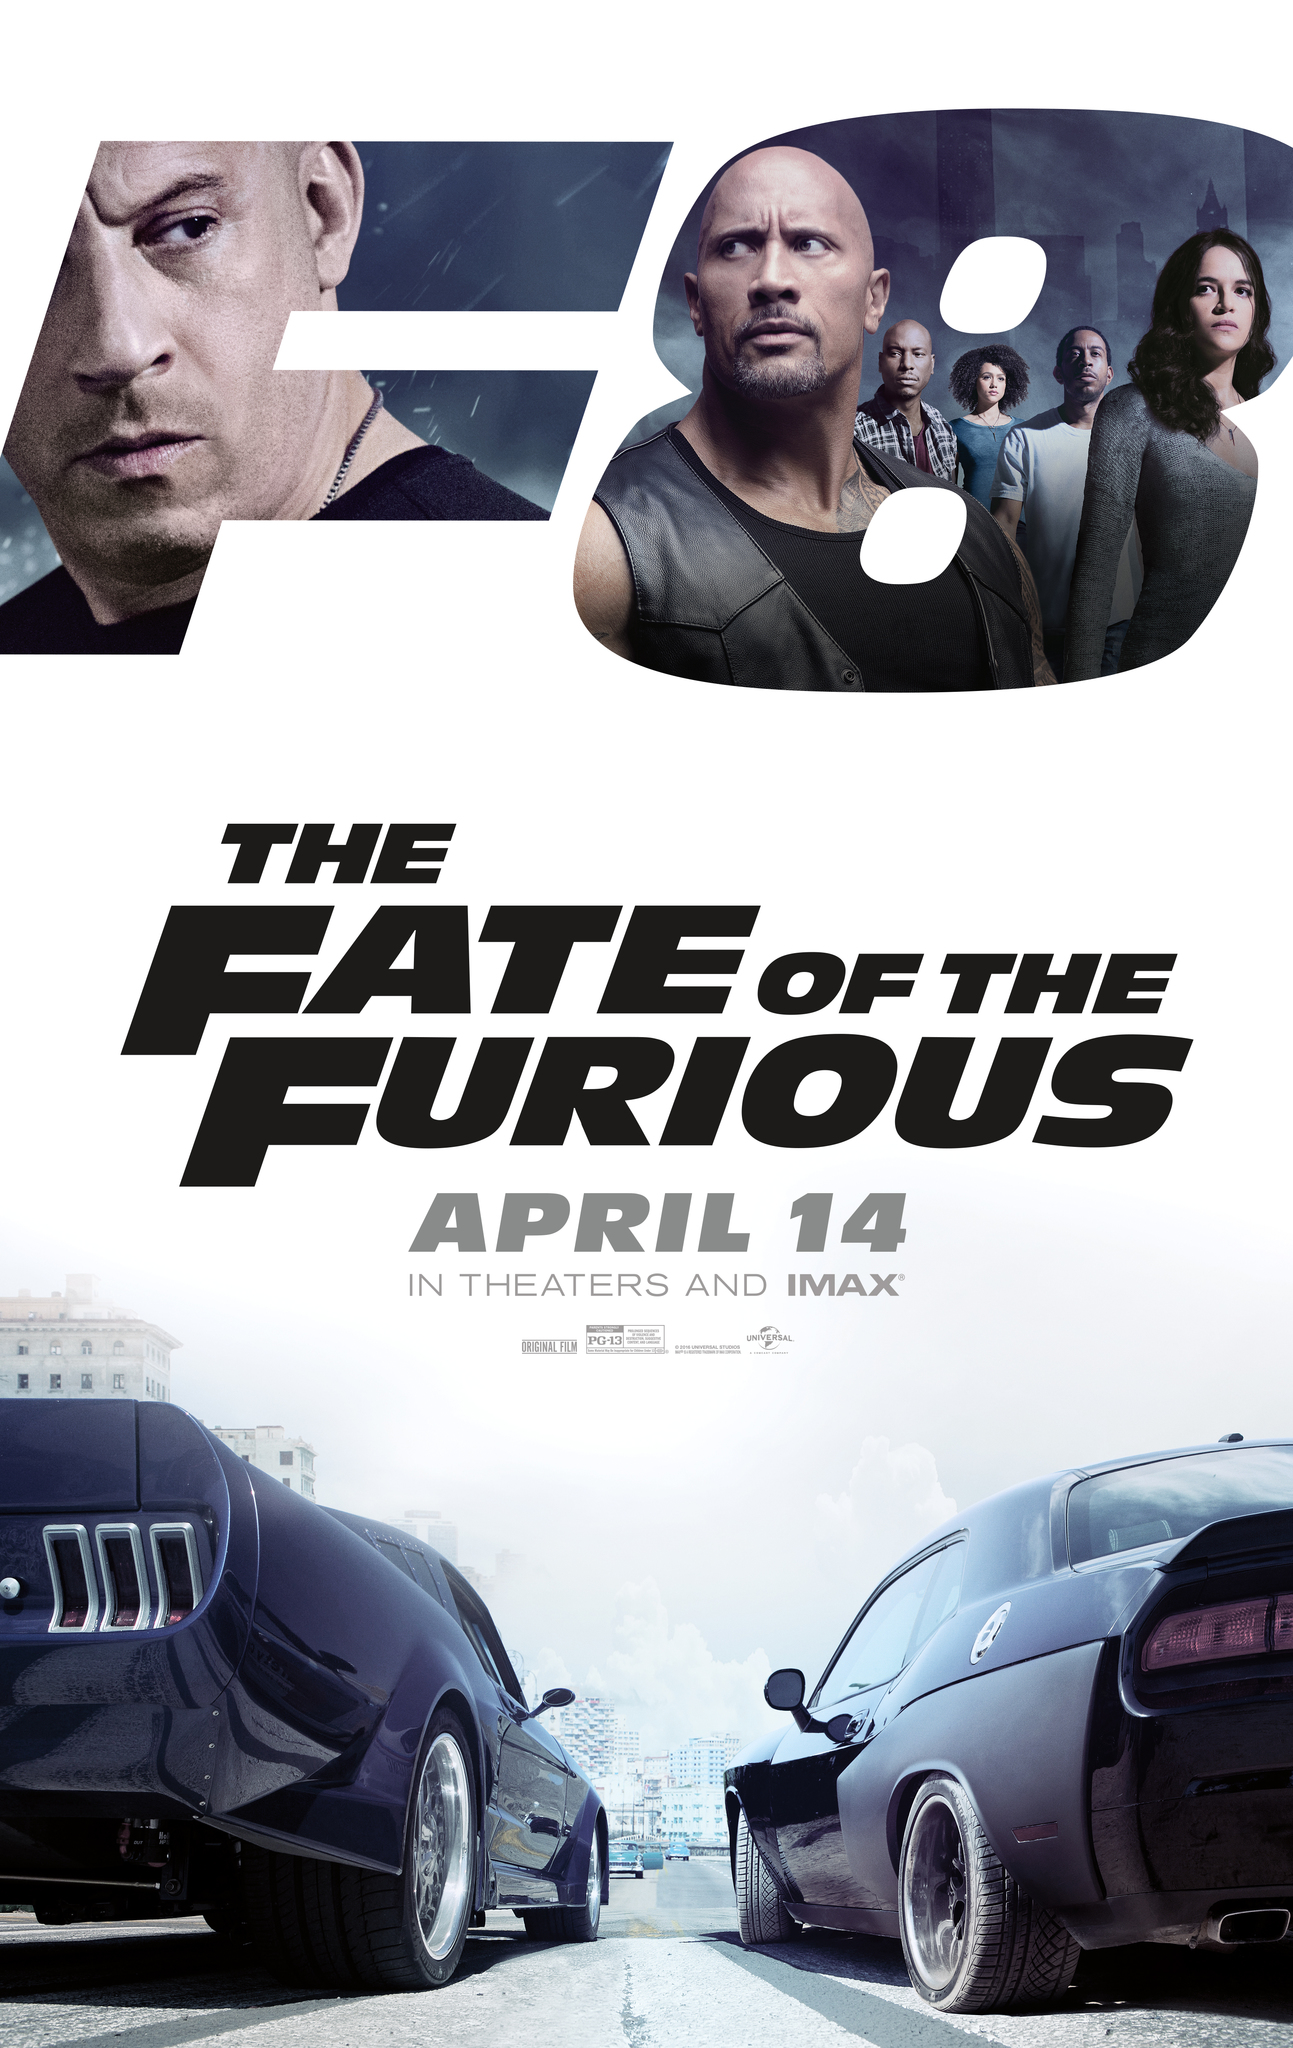 The Fate of the Furious (2017) - IMDb